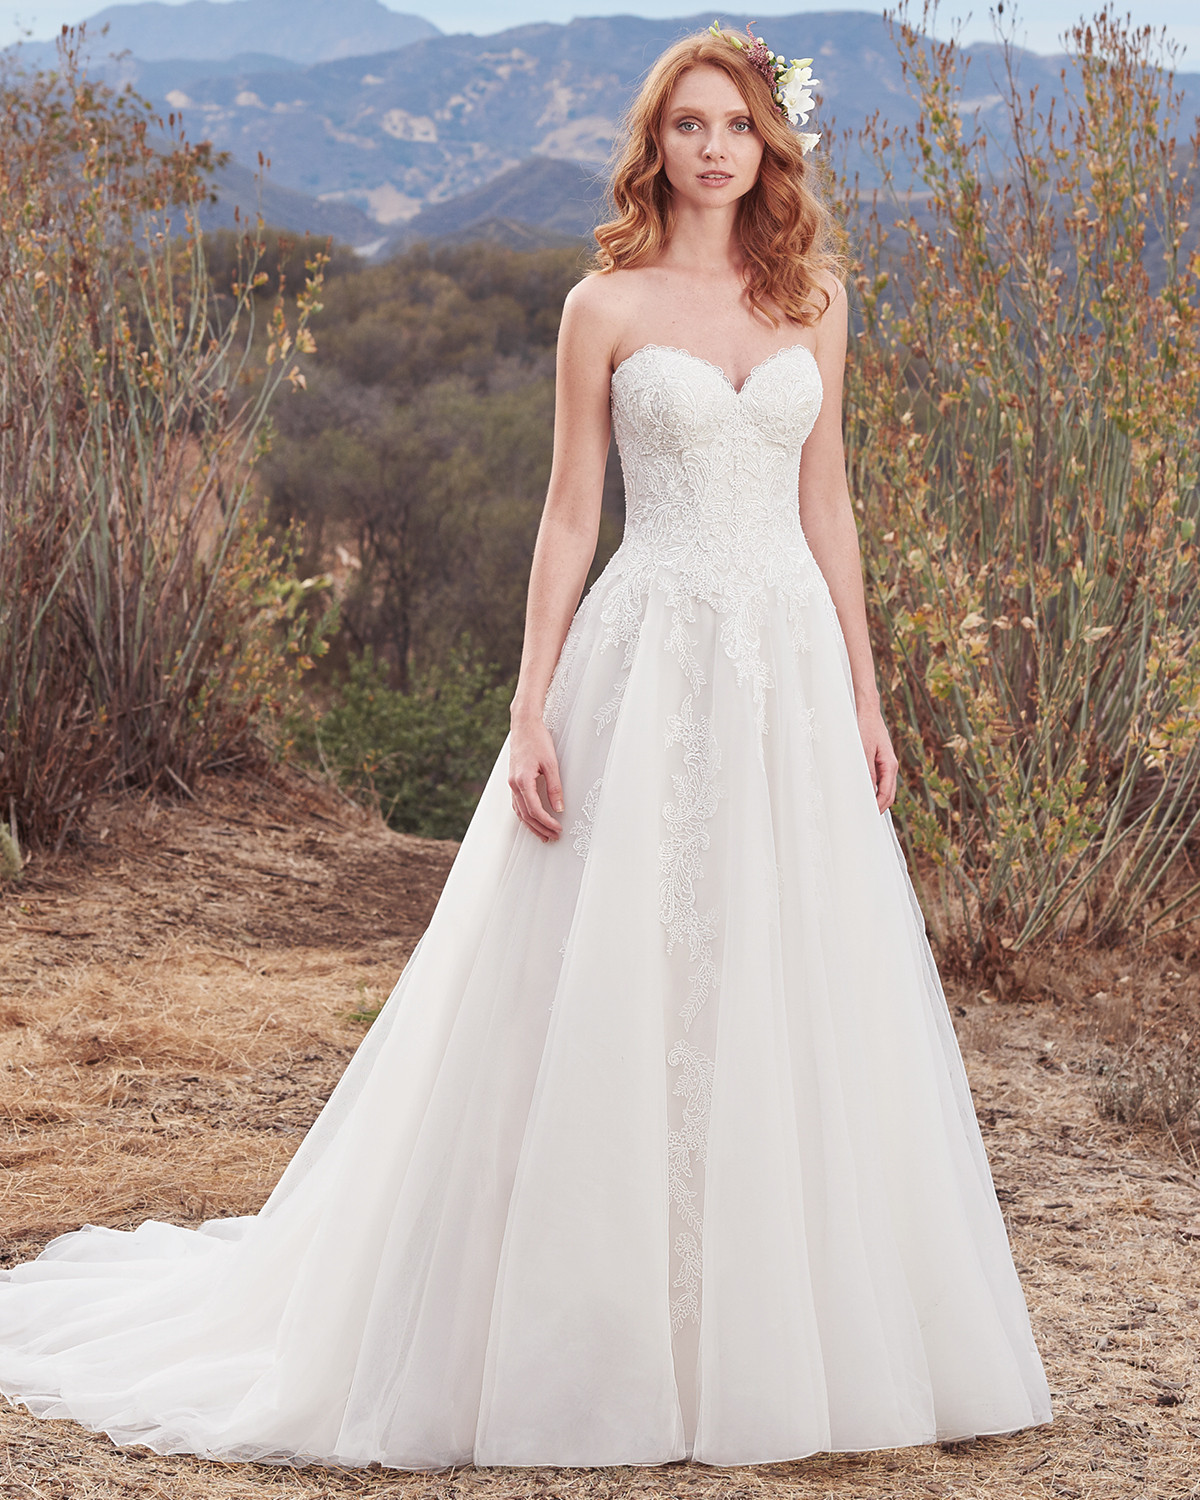 Wedding dresses by maggie sottero lorelai for Maggie soterro wedding dresses